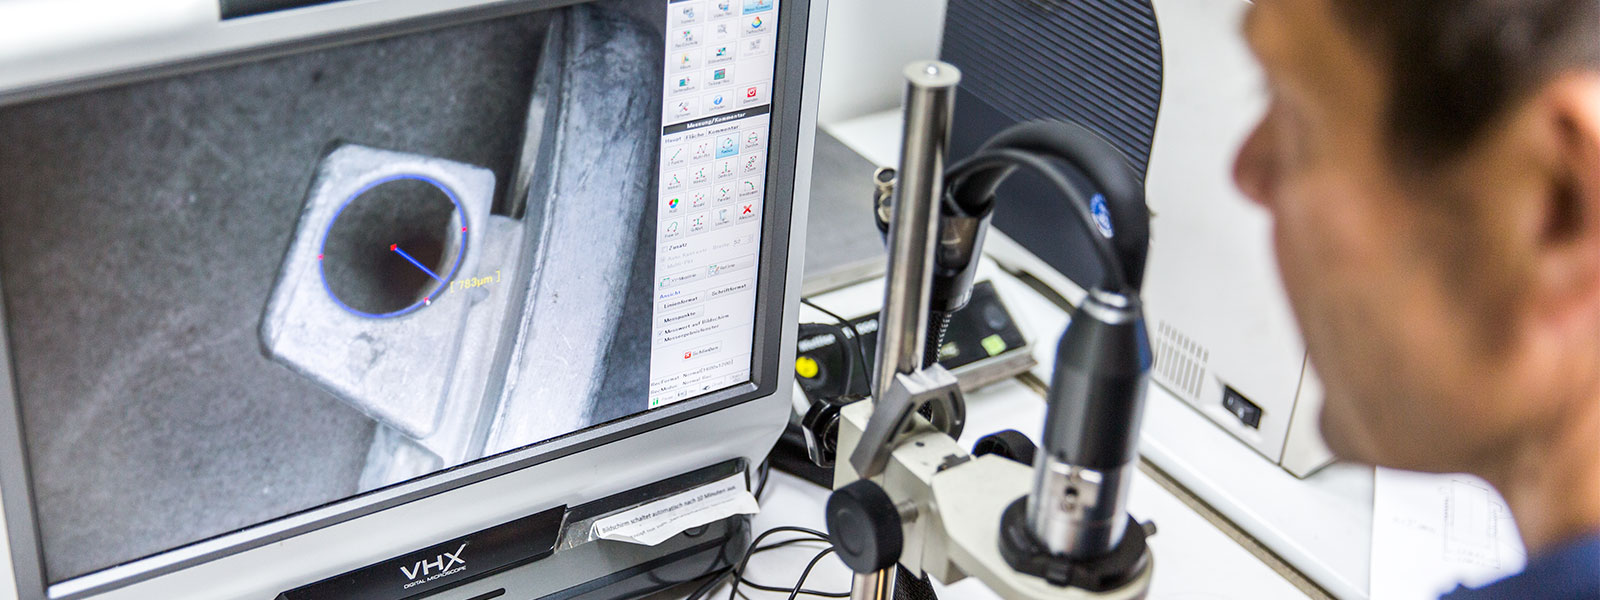 Employees performing microscopic analysis of the surface of a zinc die cast component